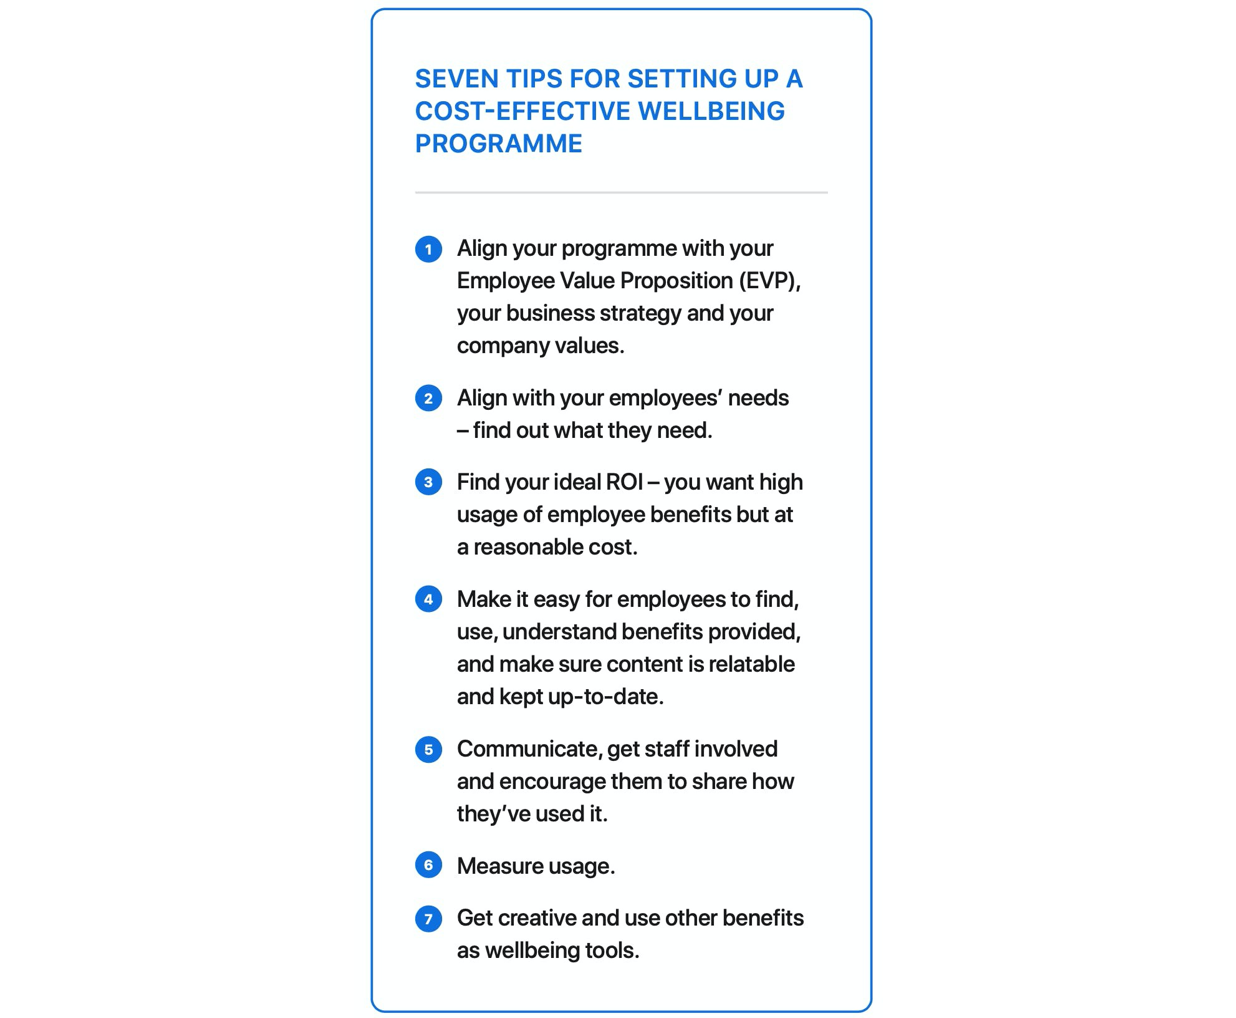 Seven tips for setting up an employee wellbeing program.